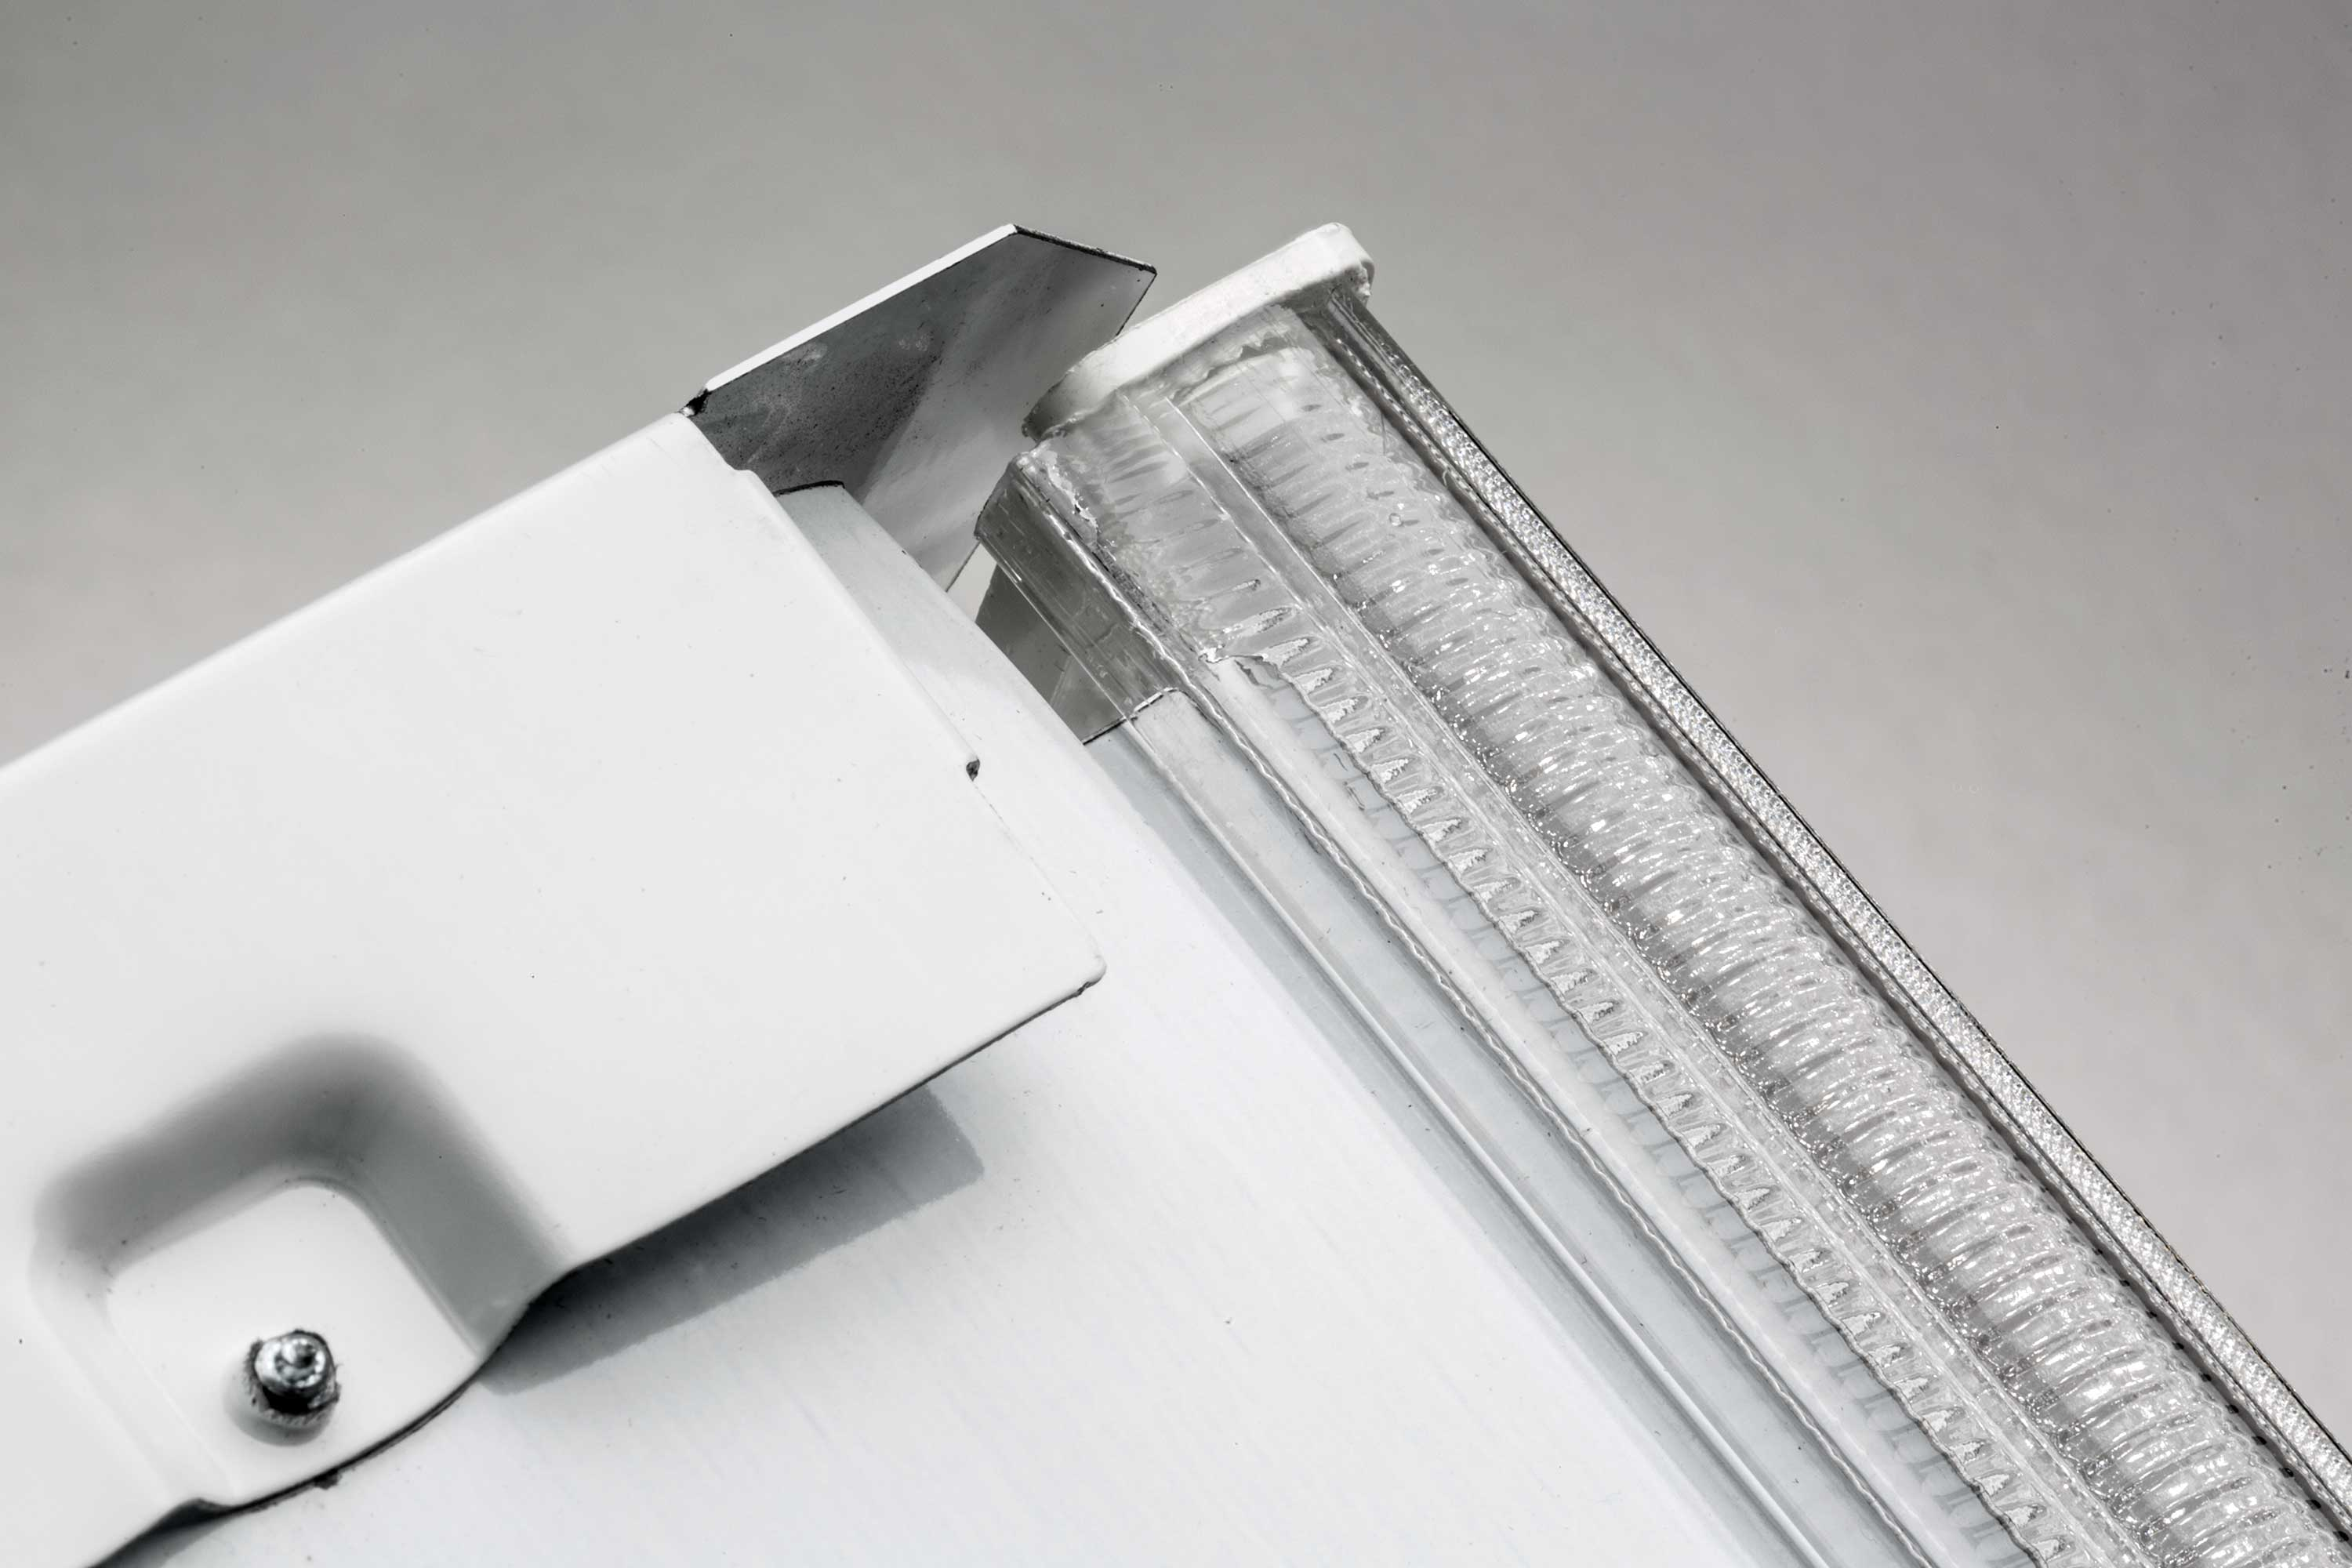 Recalled Lithonia Lighting LBL4W model ceiling light fixture top view